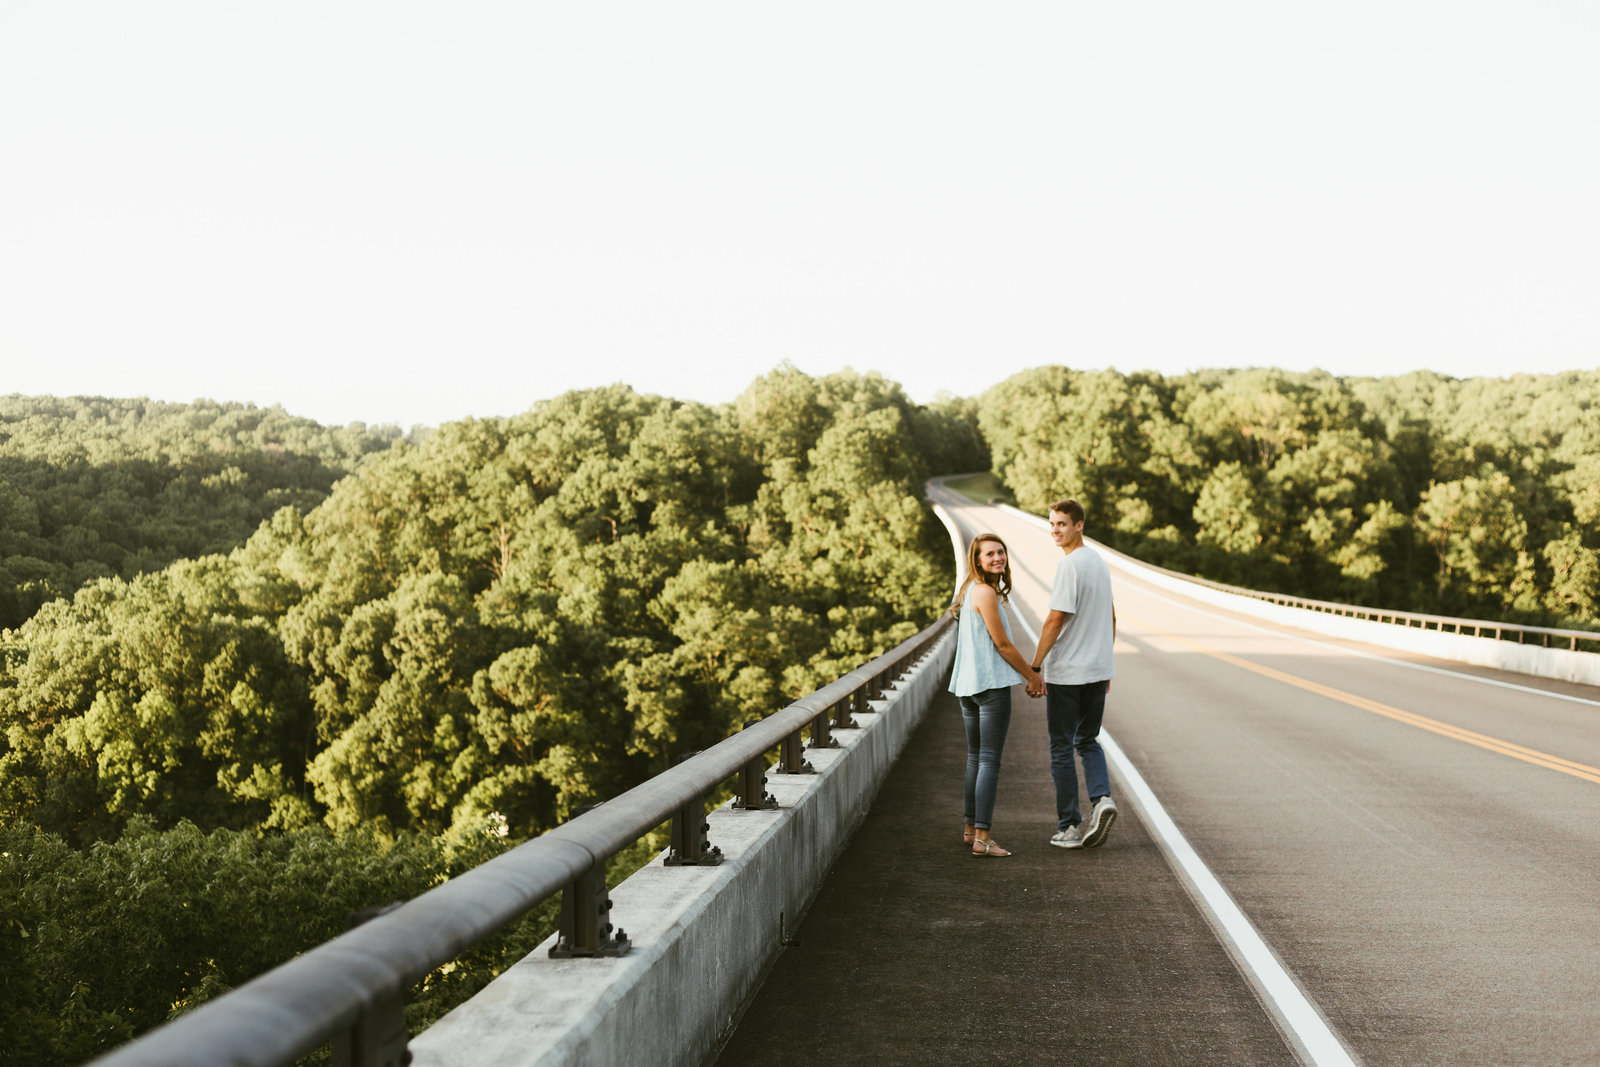 Heath-HannahRuth-Engagement-Shoot-SaraLane-And-Stevie-Wedding-Photographers-29b